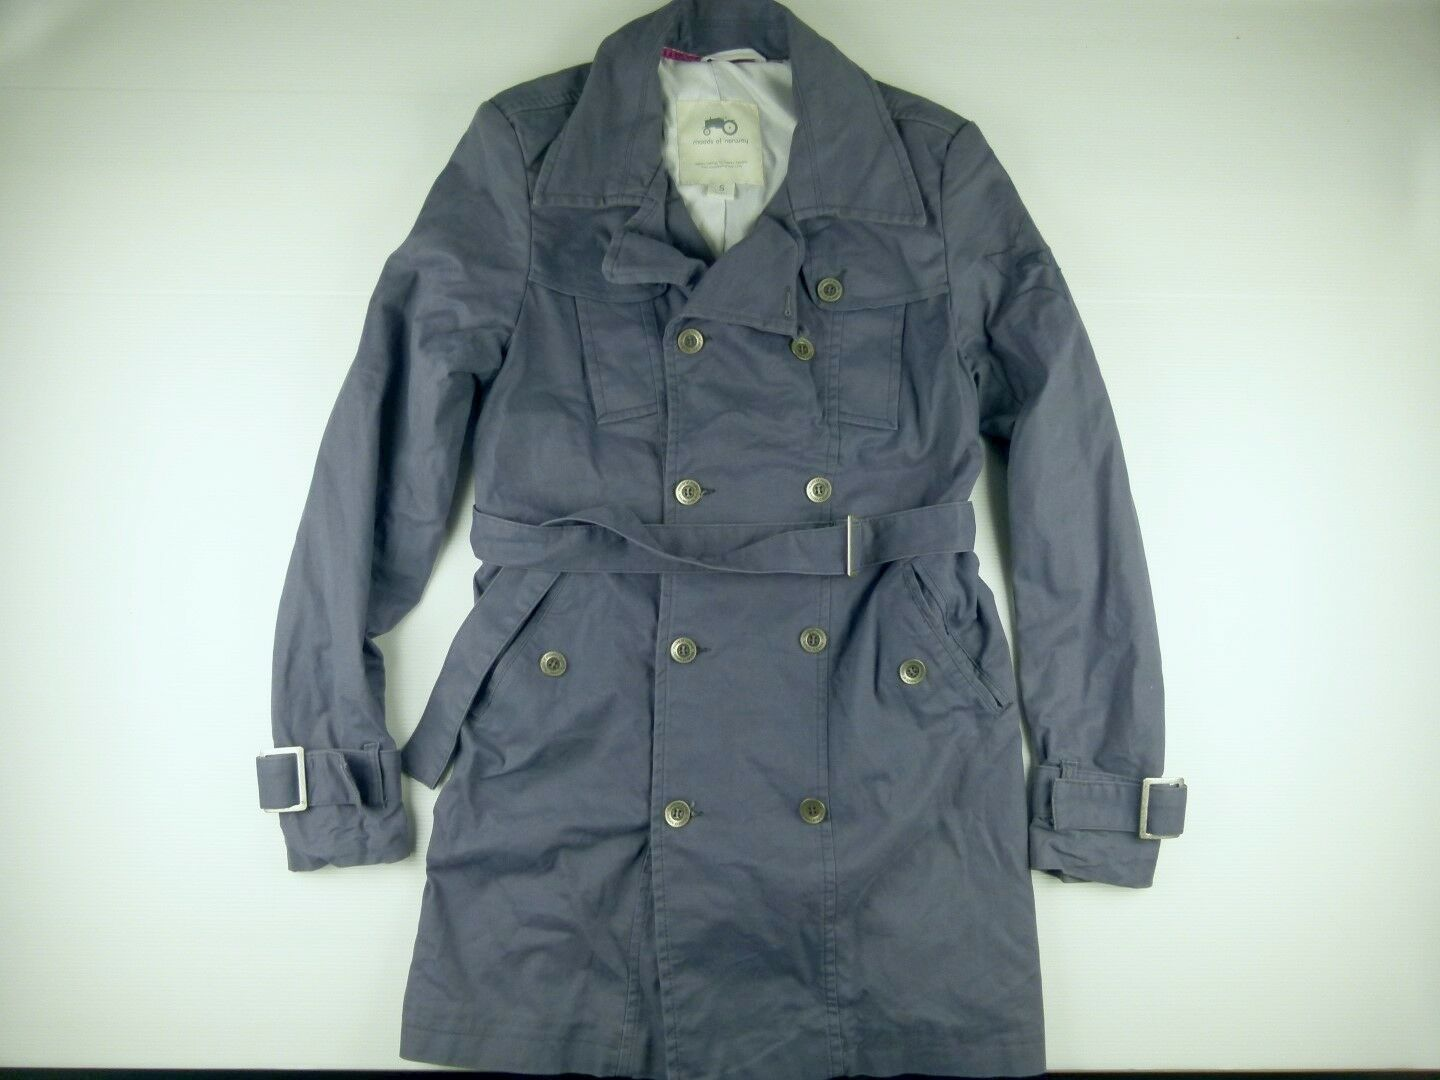 C254 MOODS OF NORWAY double breast lined coat size S, excellent condition